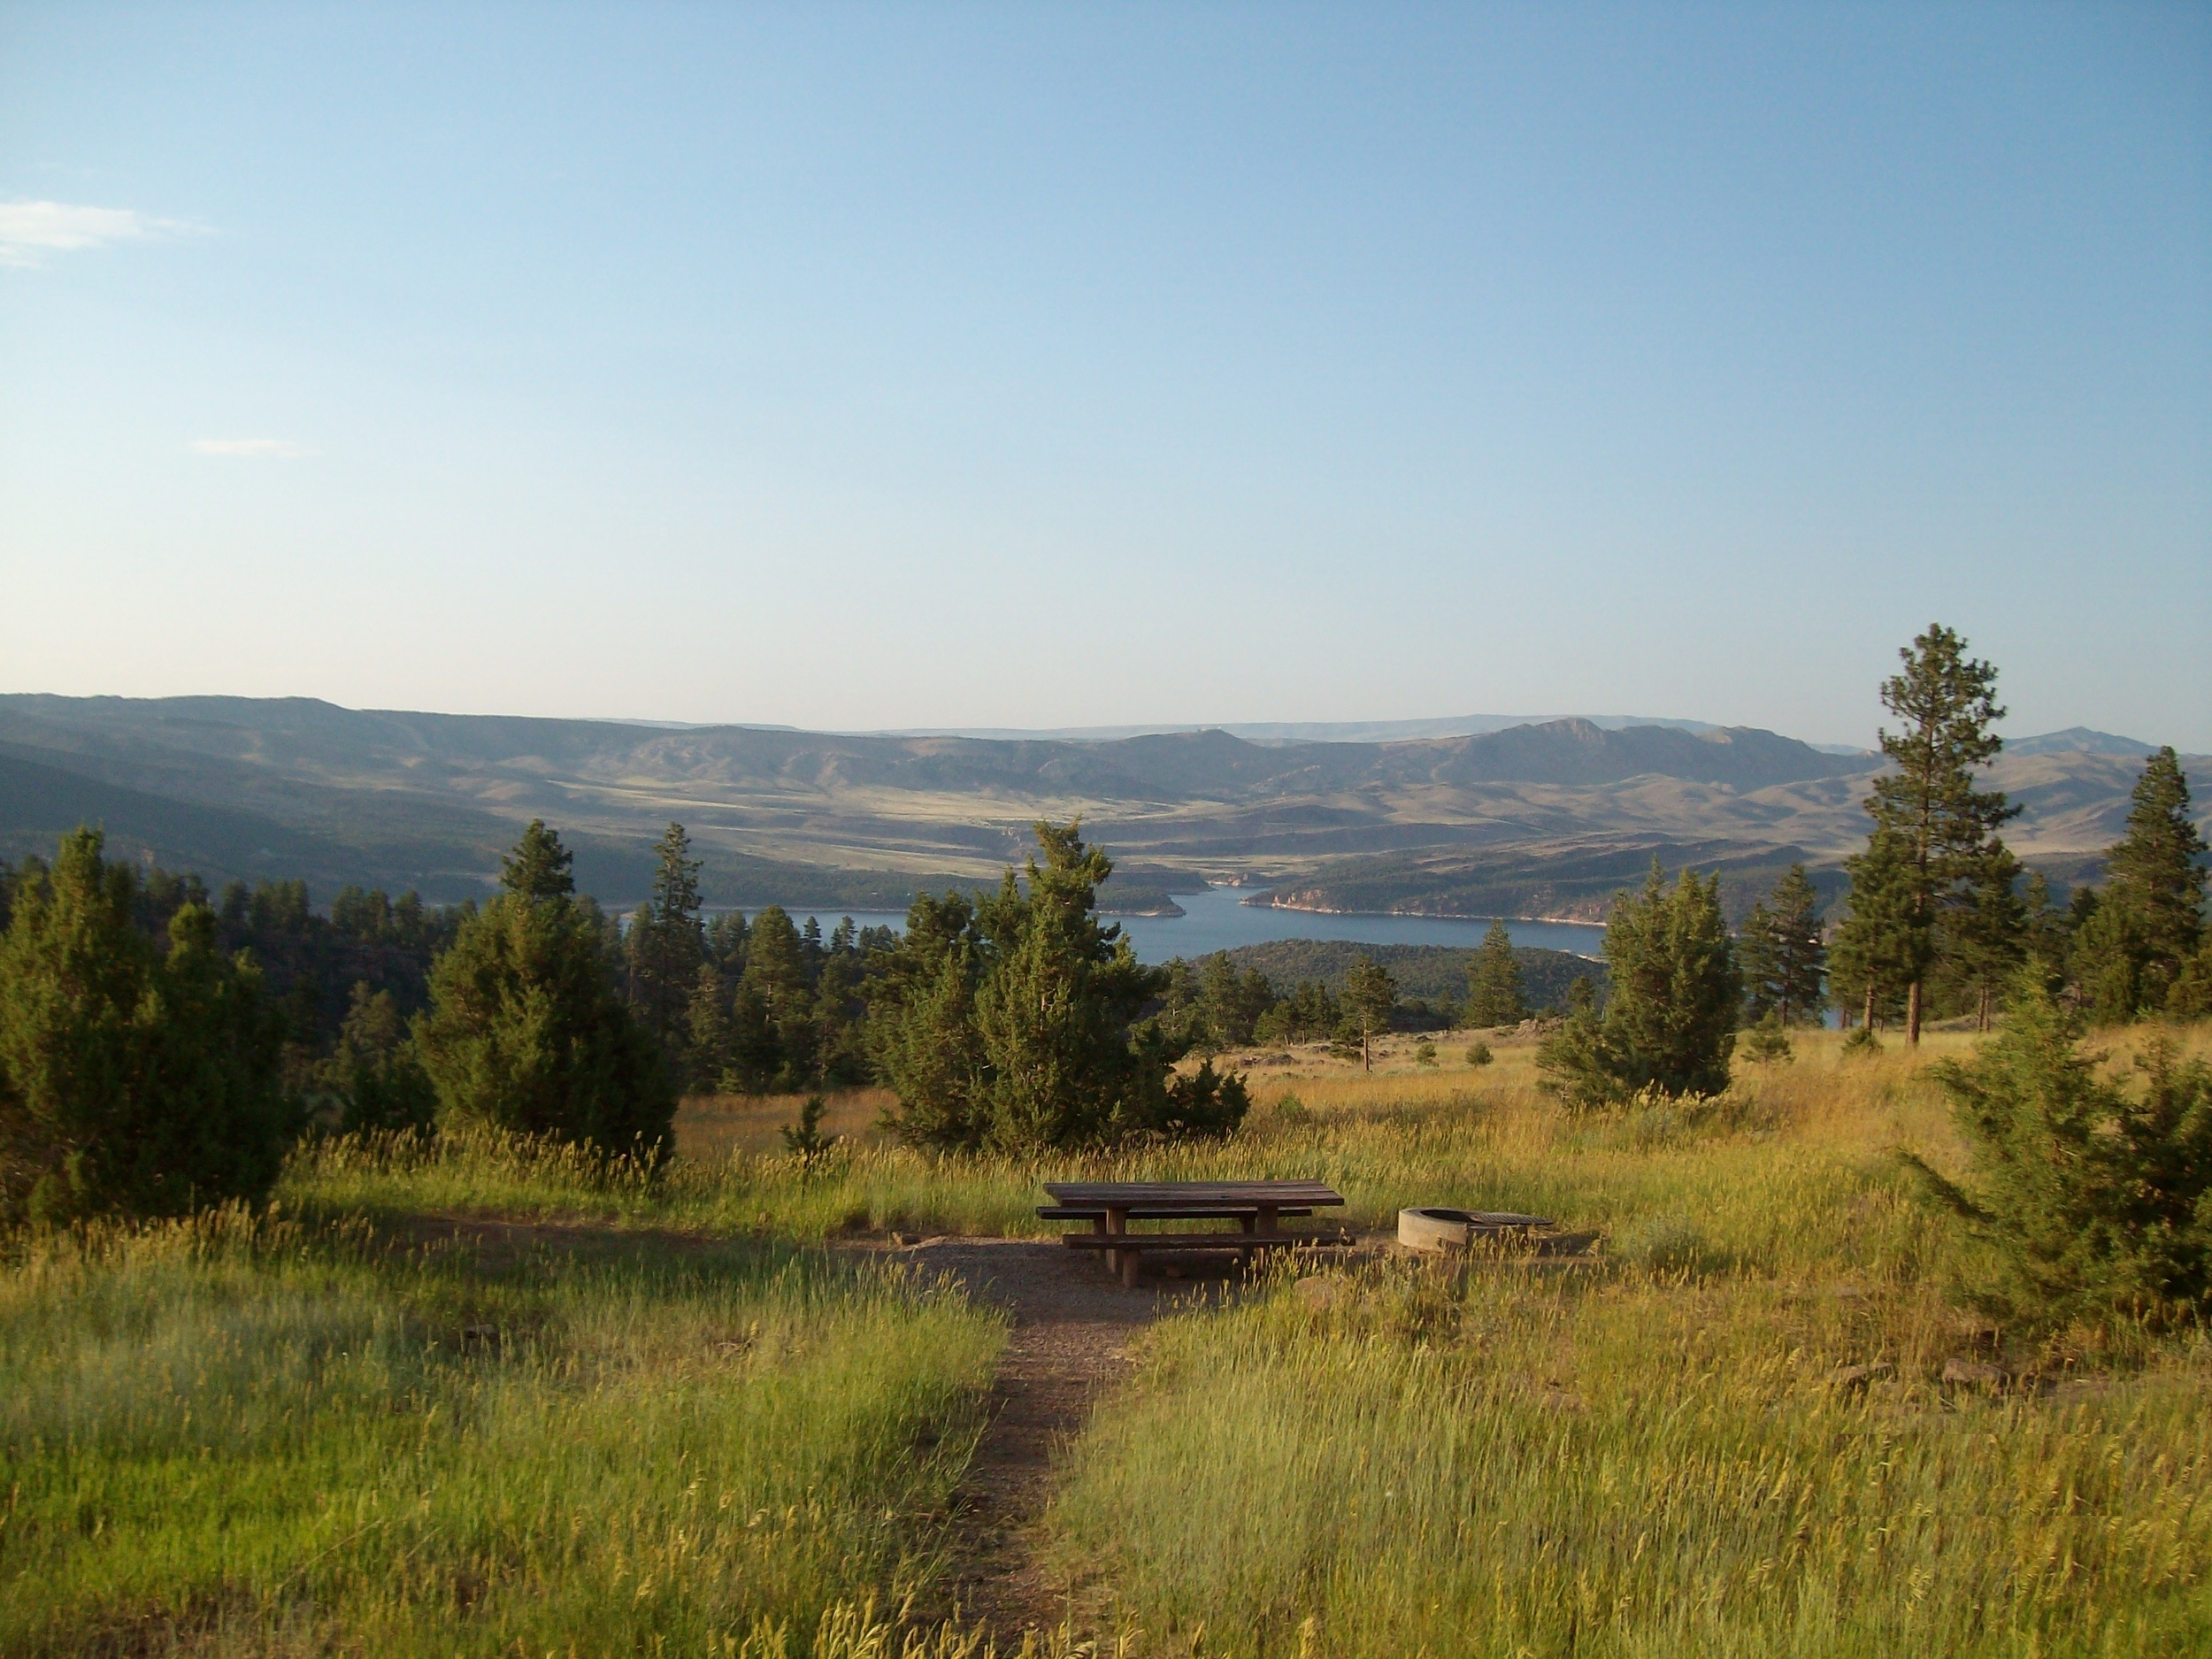 View of Flaming Gorge